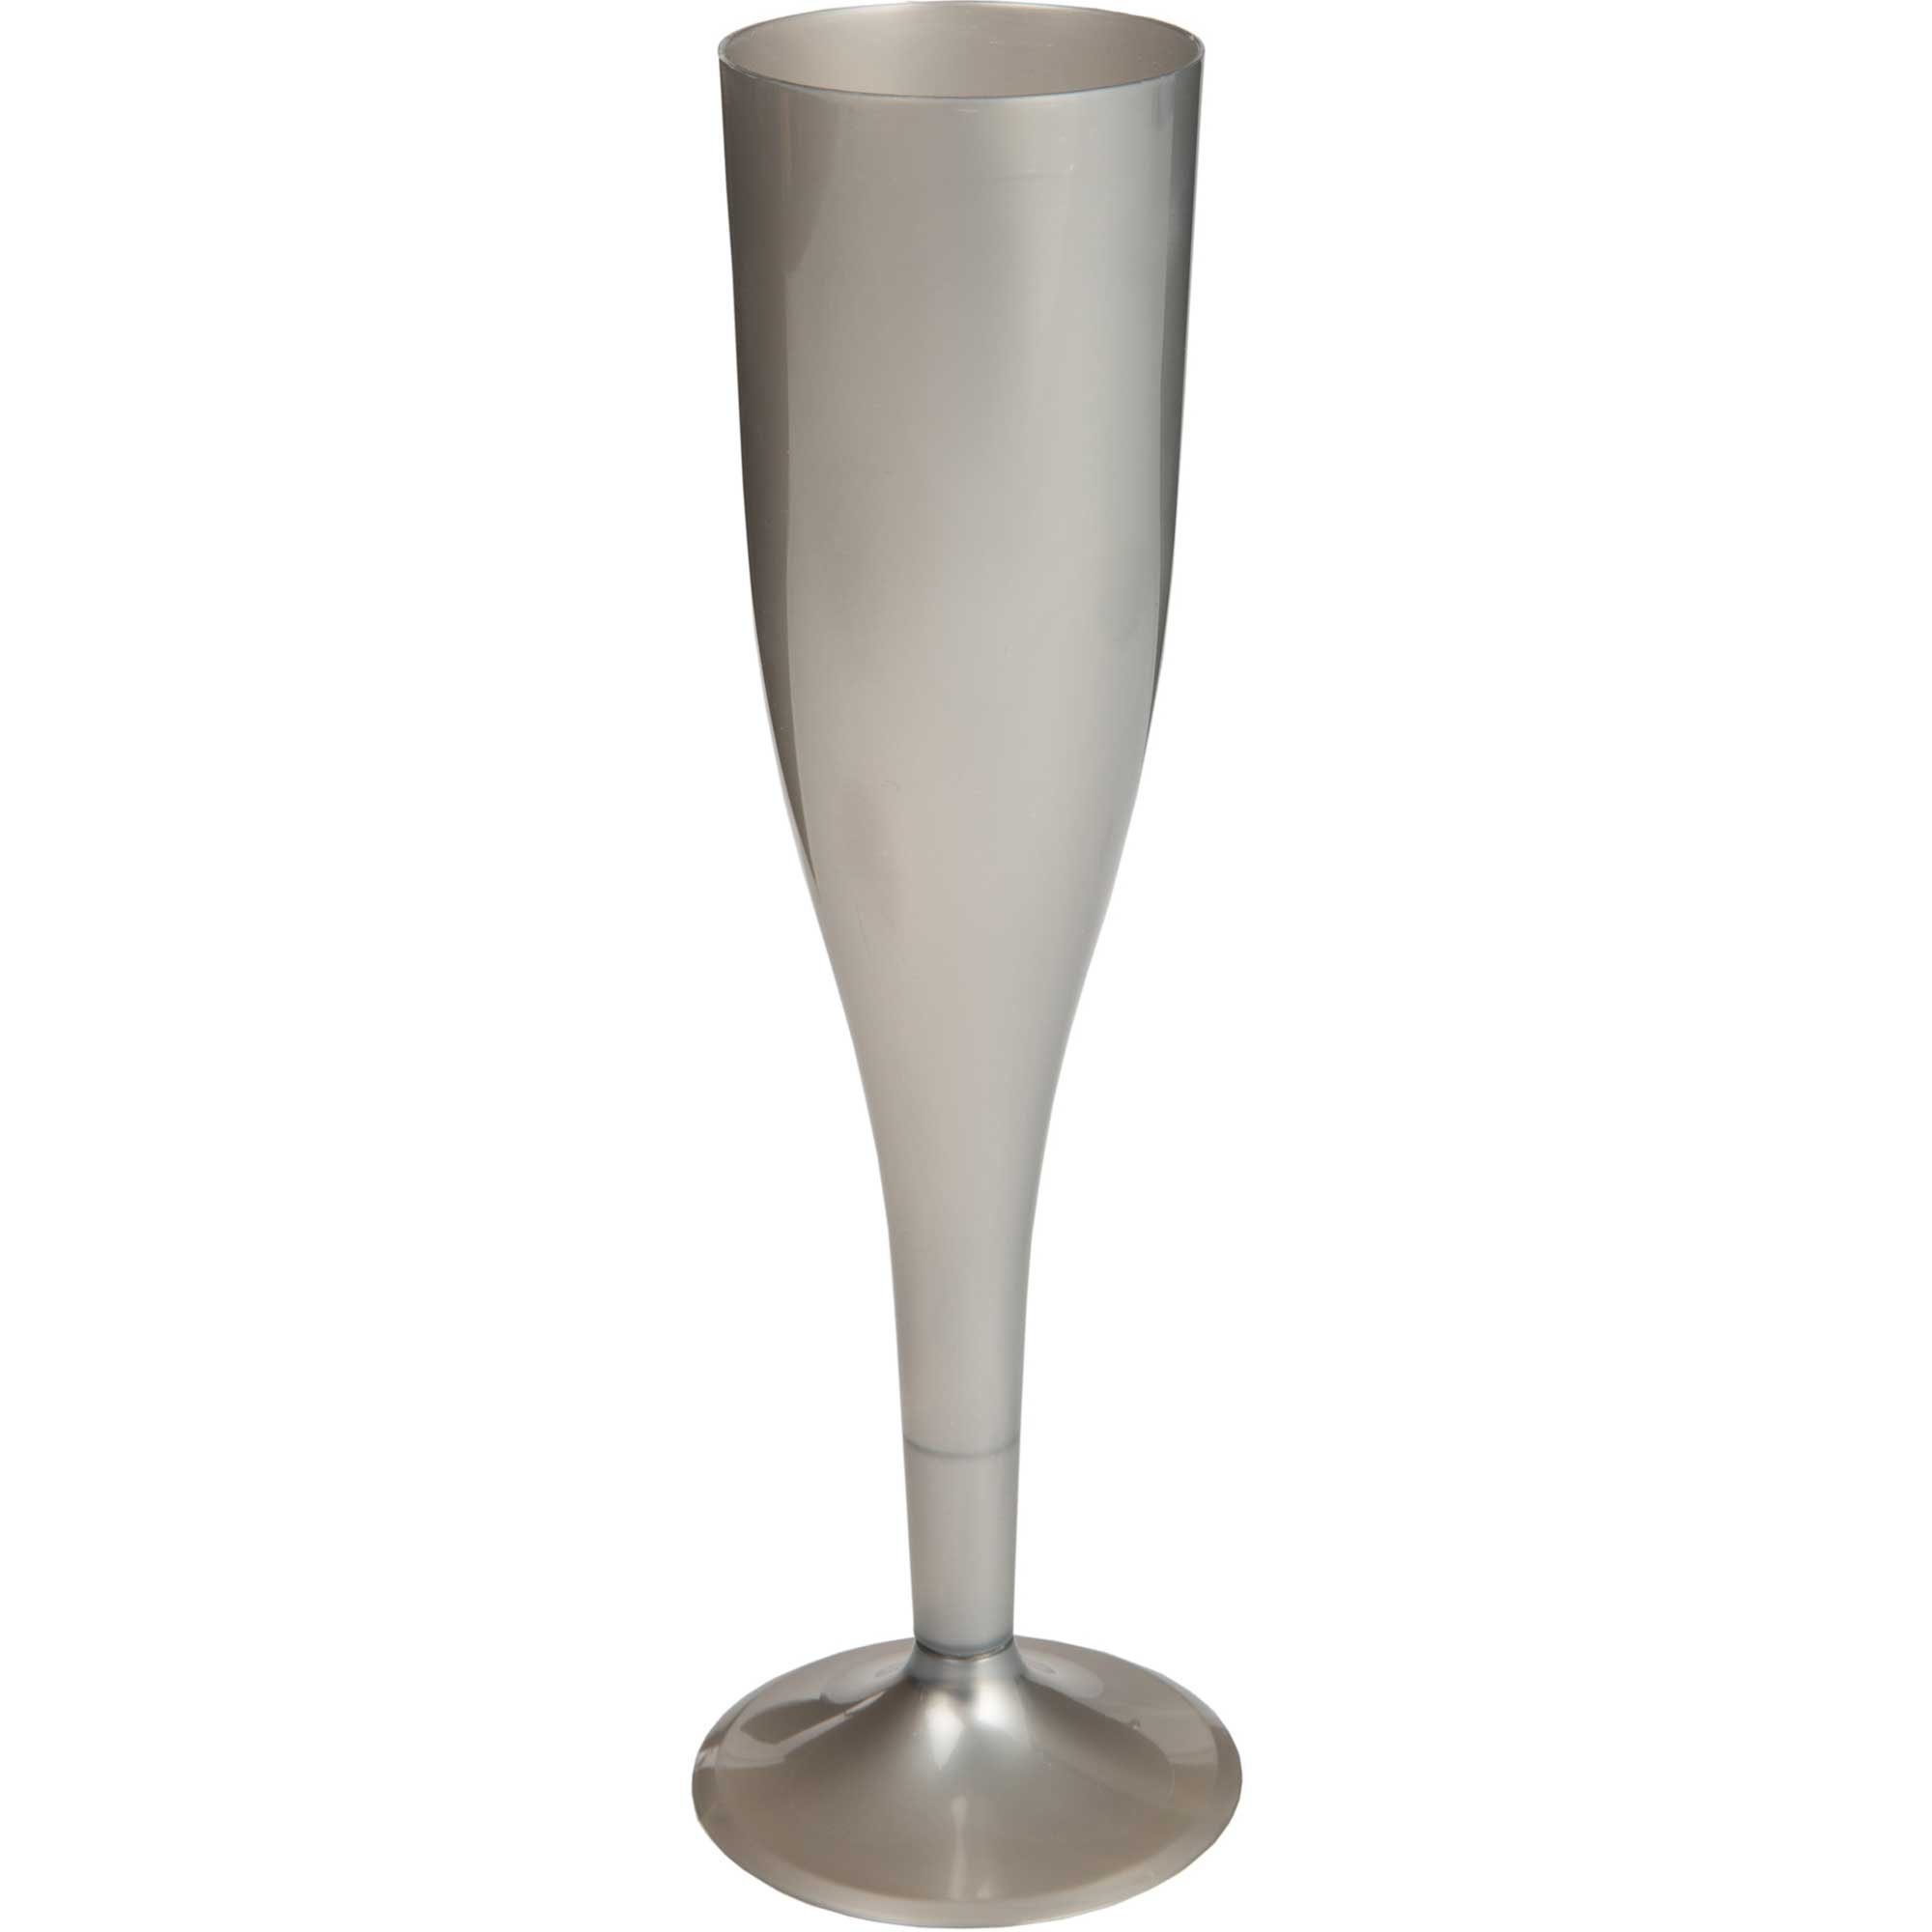 Big Party Pack 5.5oz/162ml Champagne Flute Silver